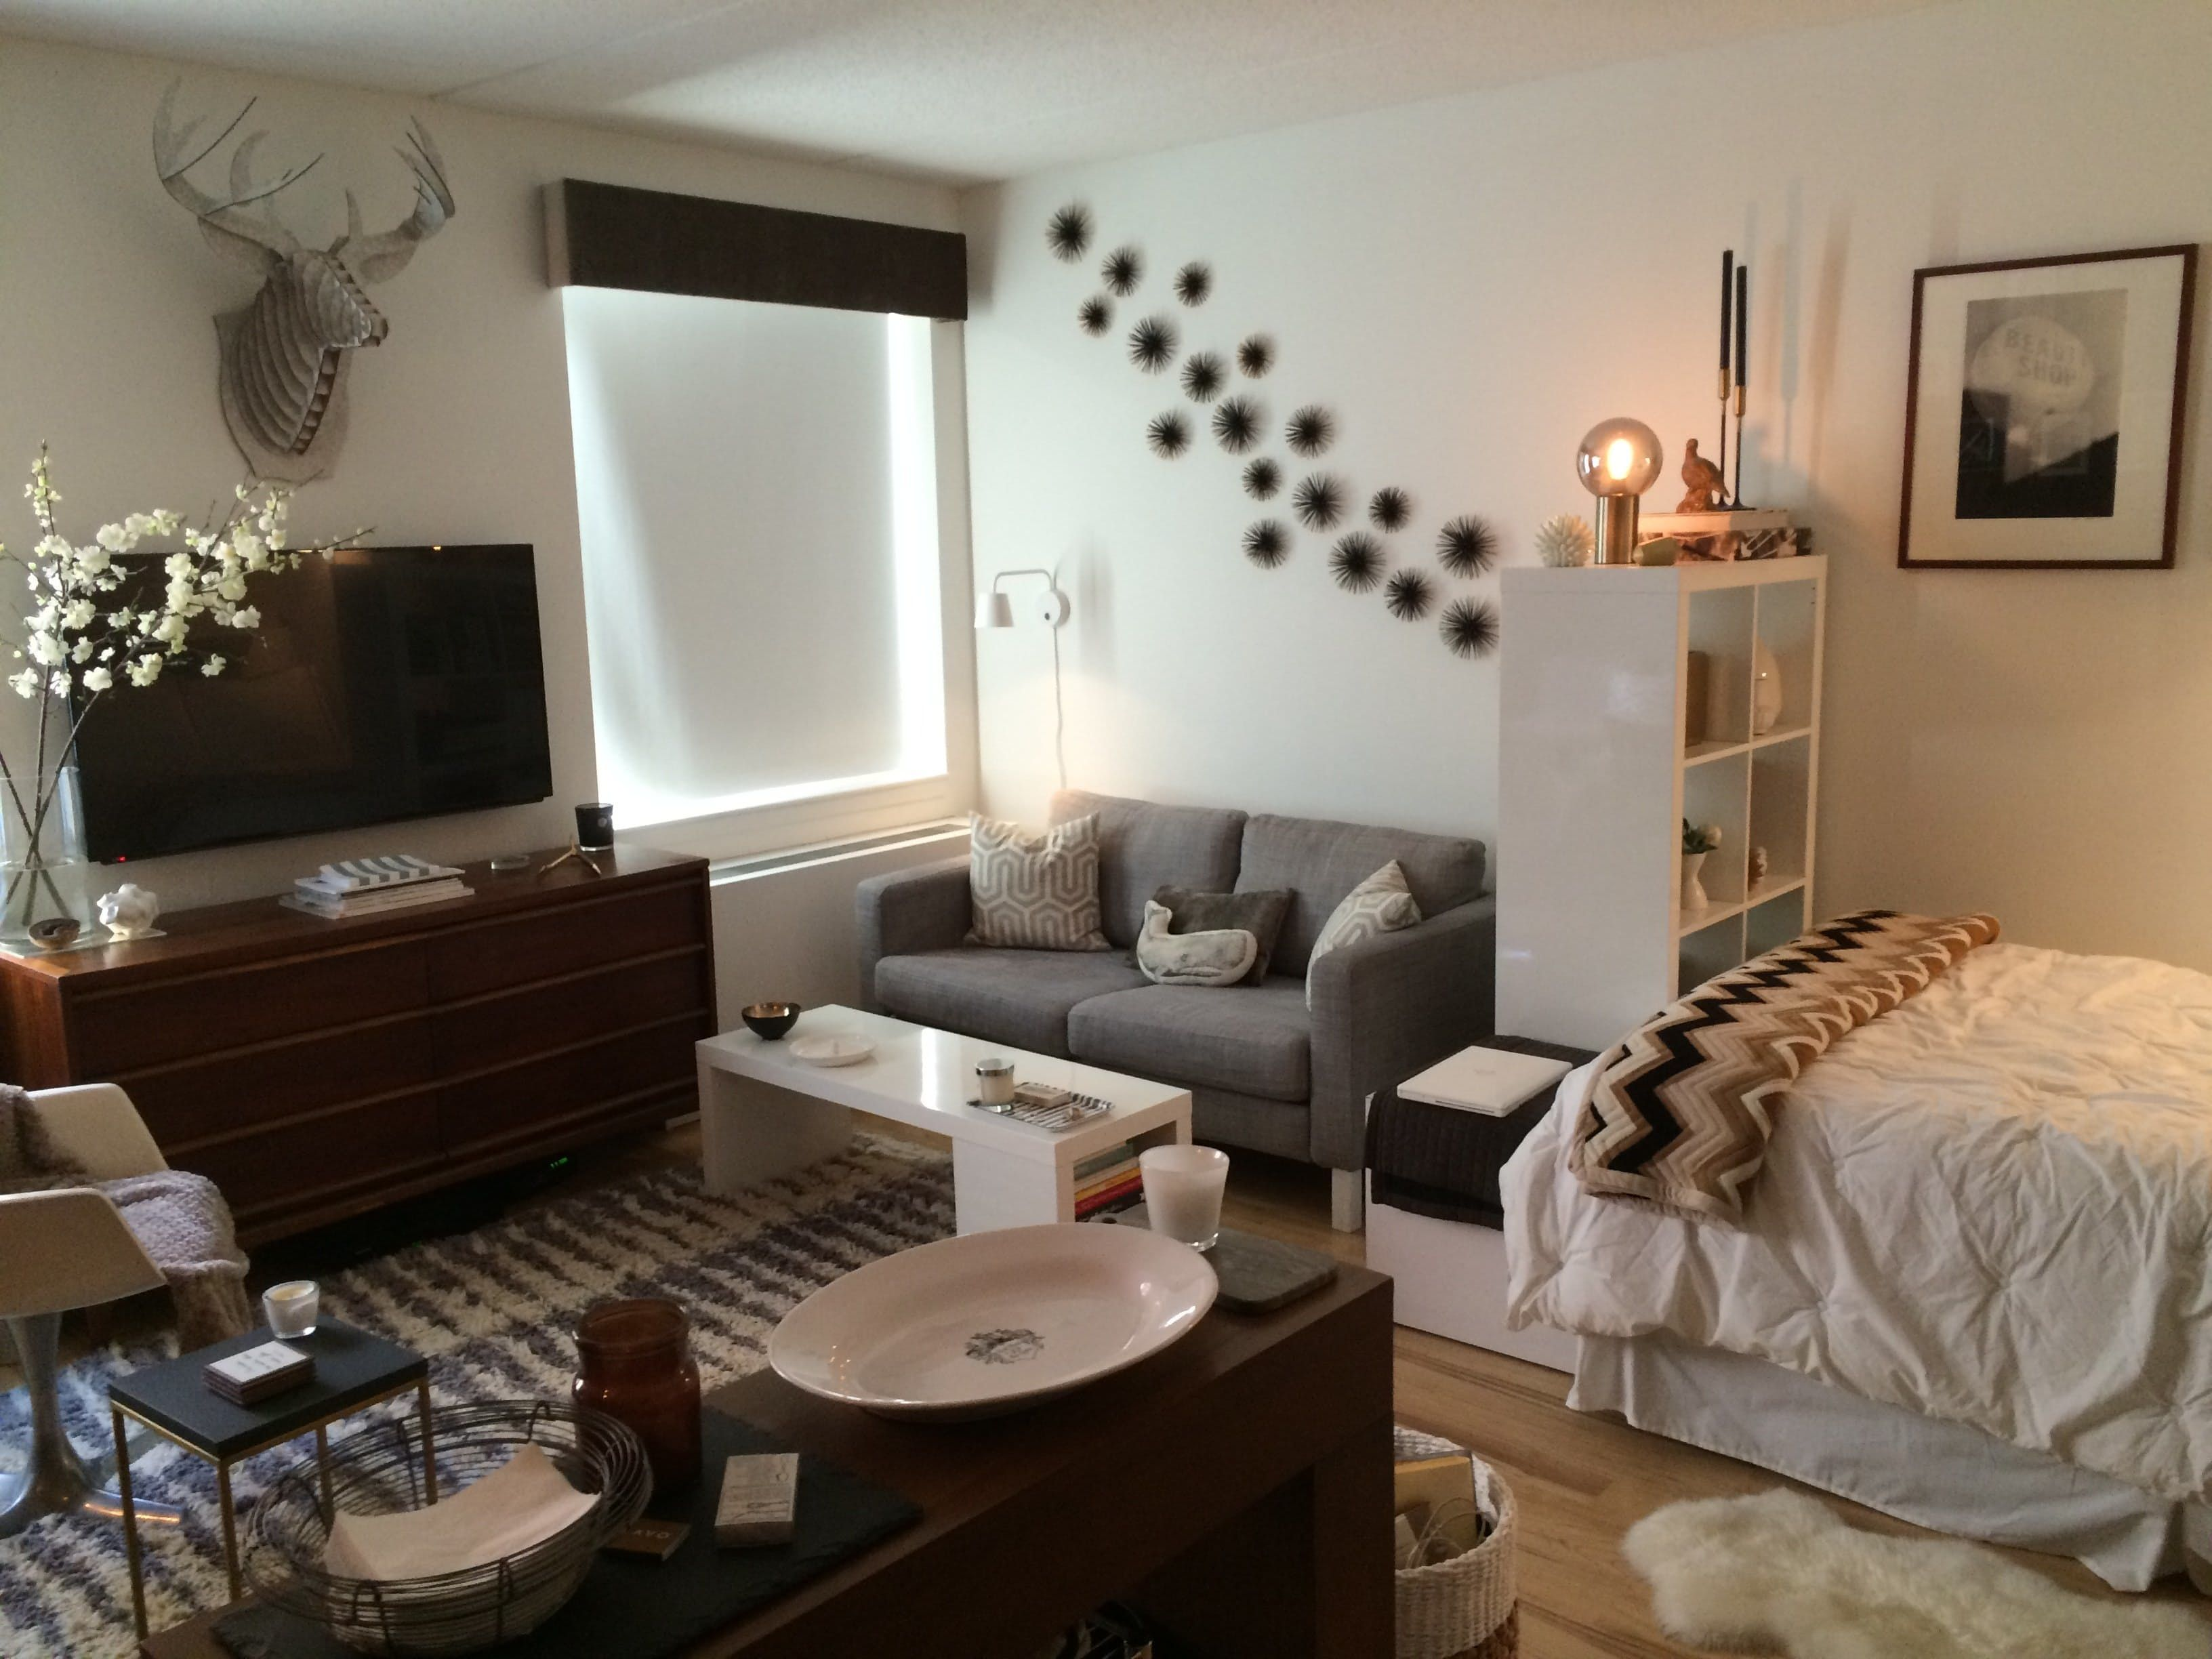 5 studio apartment layouts that work studio apartment for Studio apt decor ideas